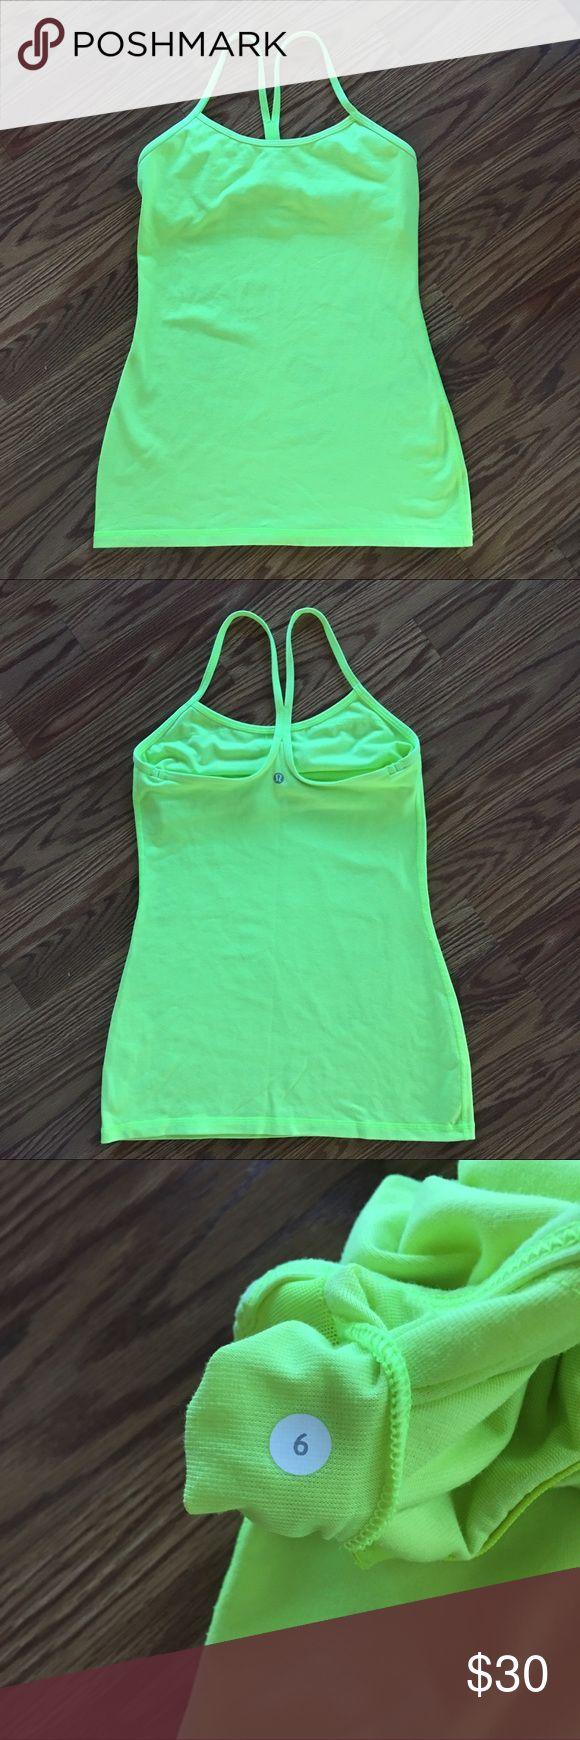 Lululemon Power Y Tank Gently used ray neon yellow power y tank. Size 6. Color is most like the last stock photo. lululemon athletica Tops Tank Tops